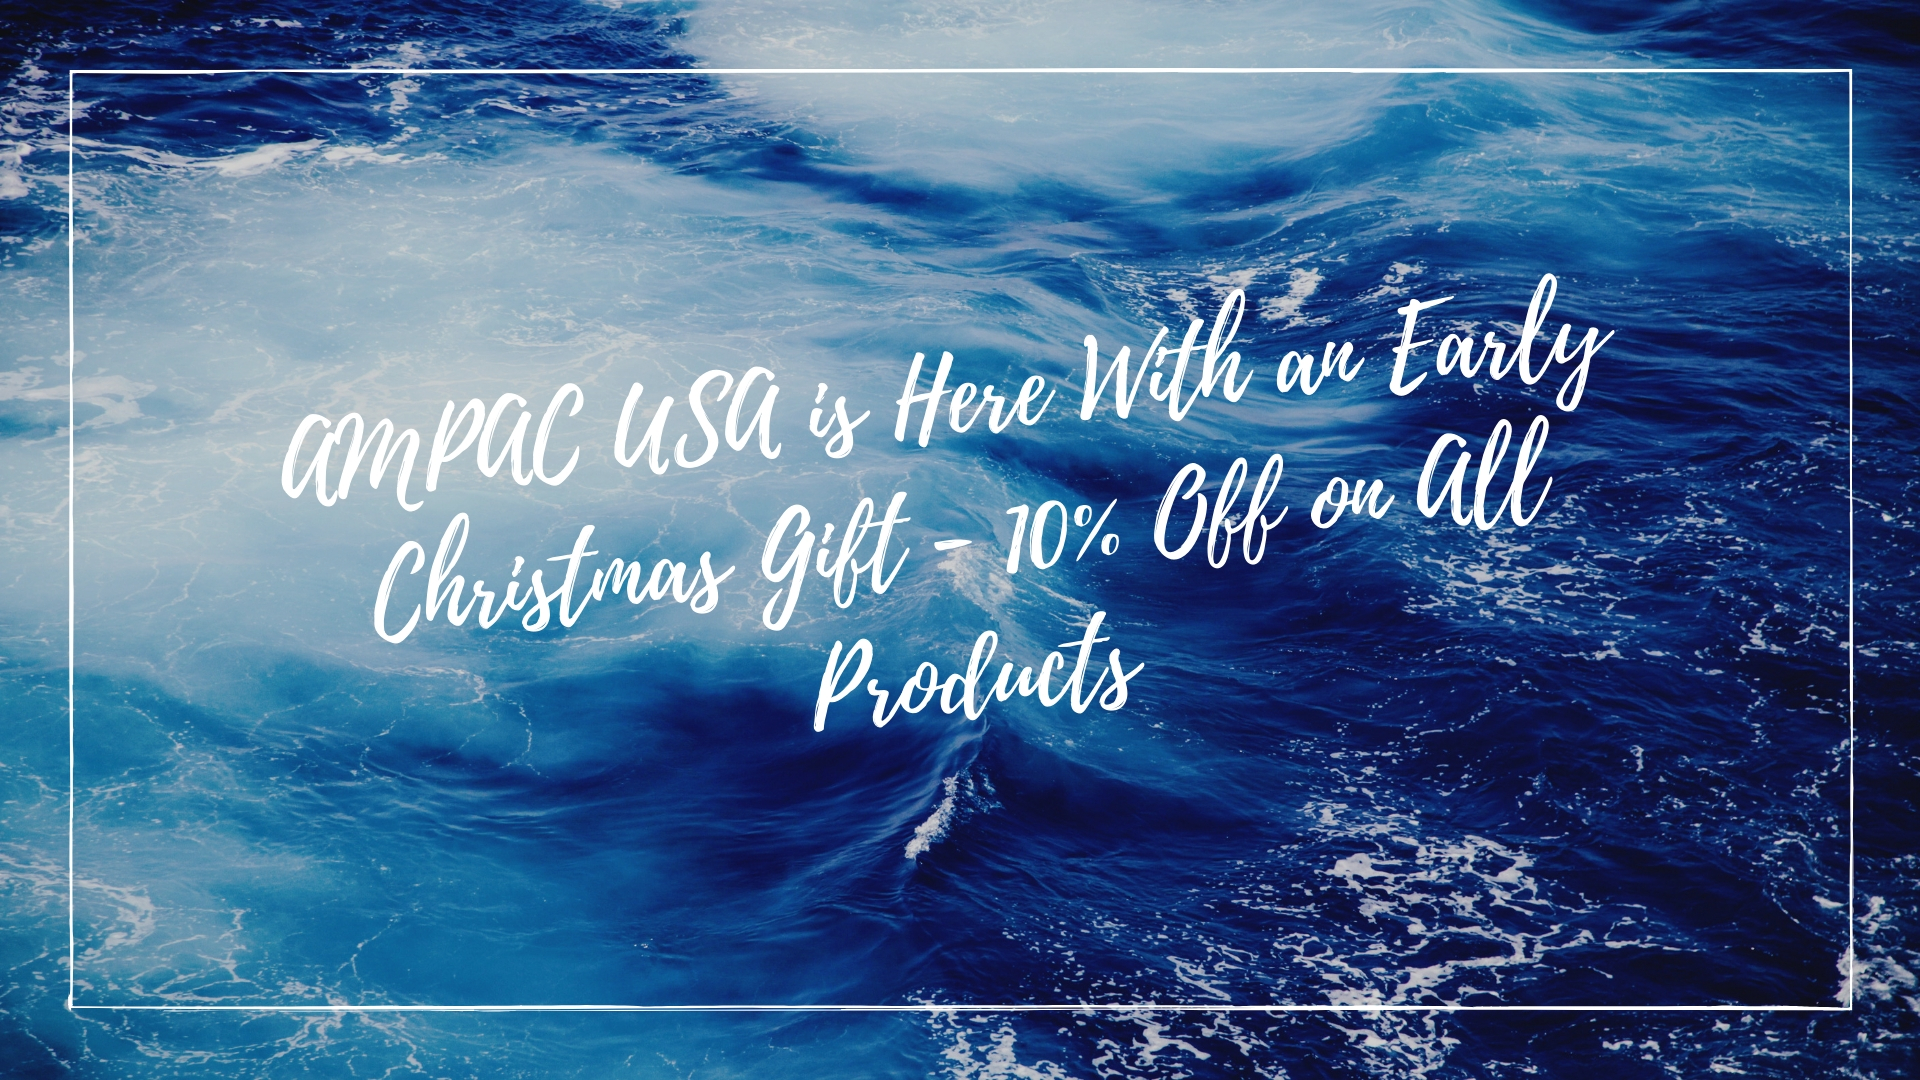 AMPAC USA is Here With an Early Christmas Gift - 10% Off on All ...